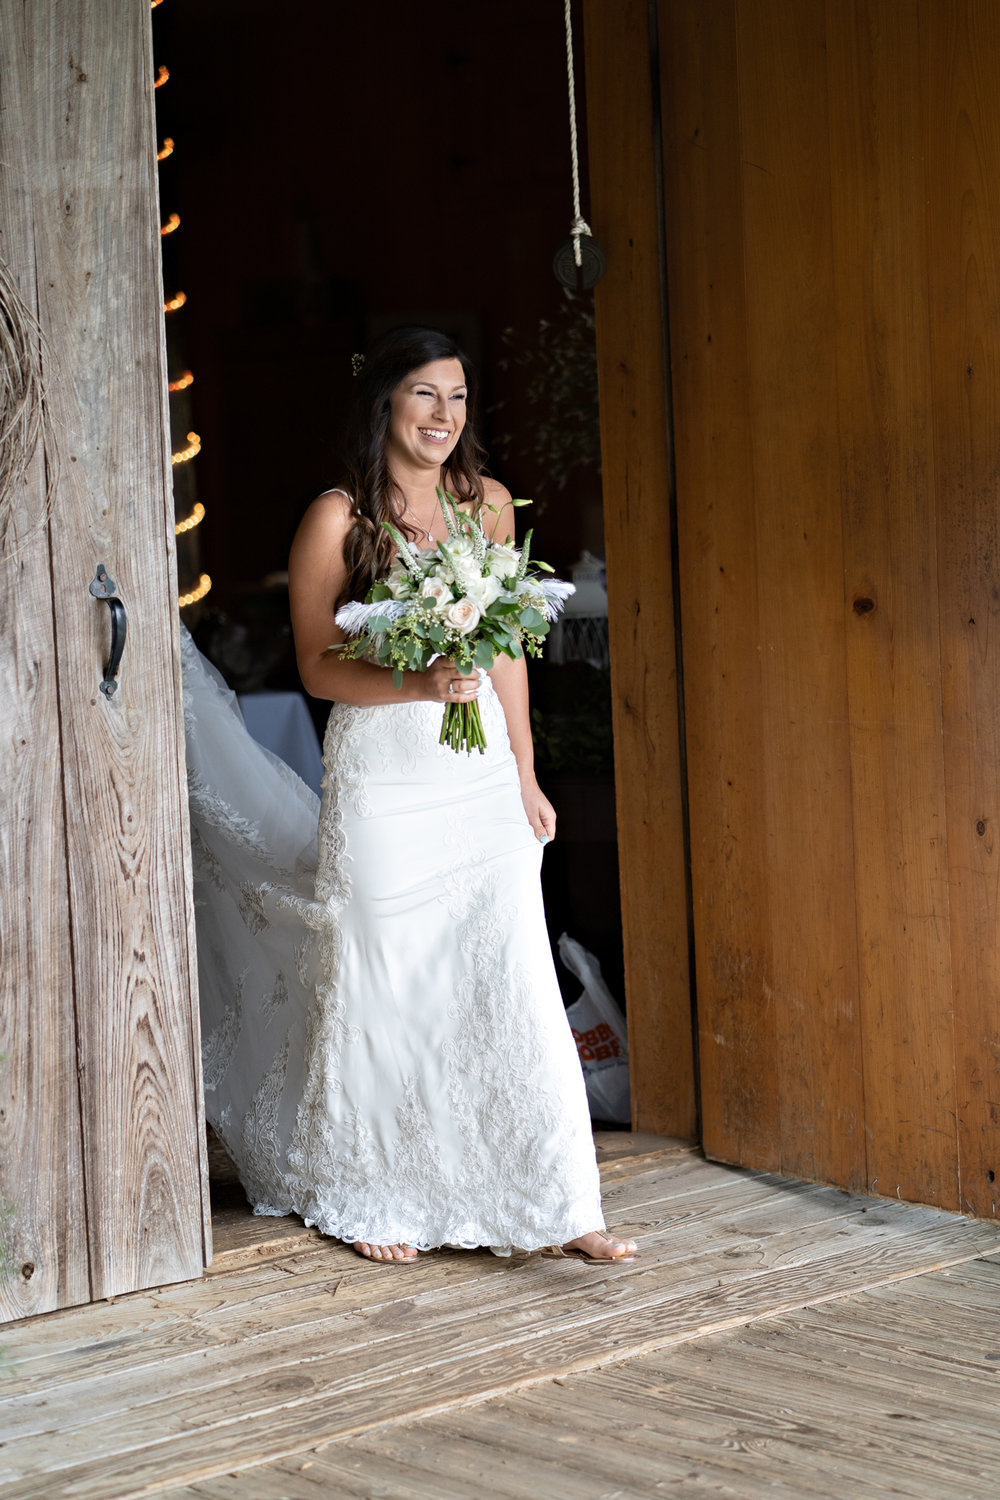 Fairhope-Alabama-Wedding-Photographers-Nick-Drollette-Photography-104.jpg